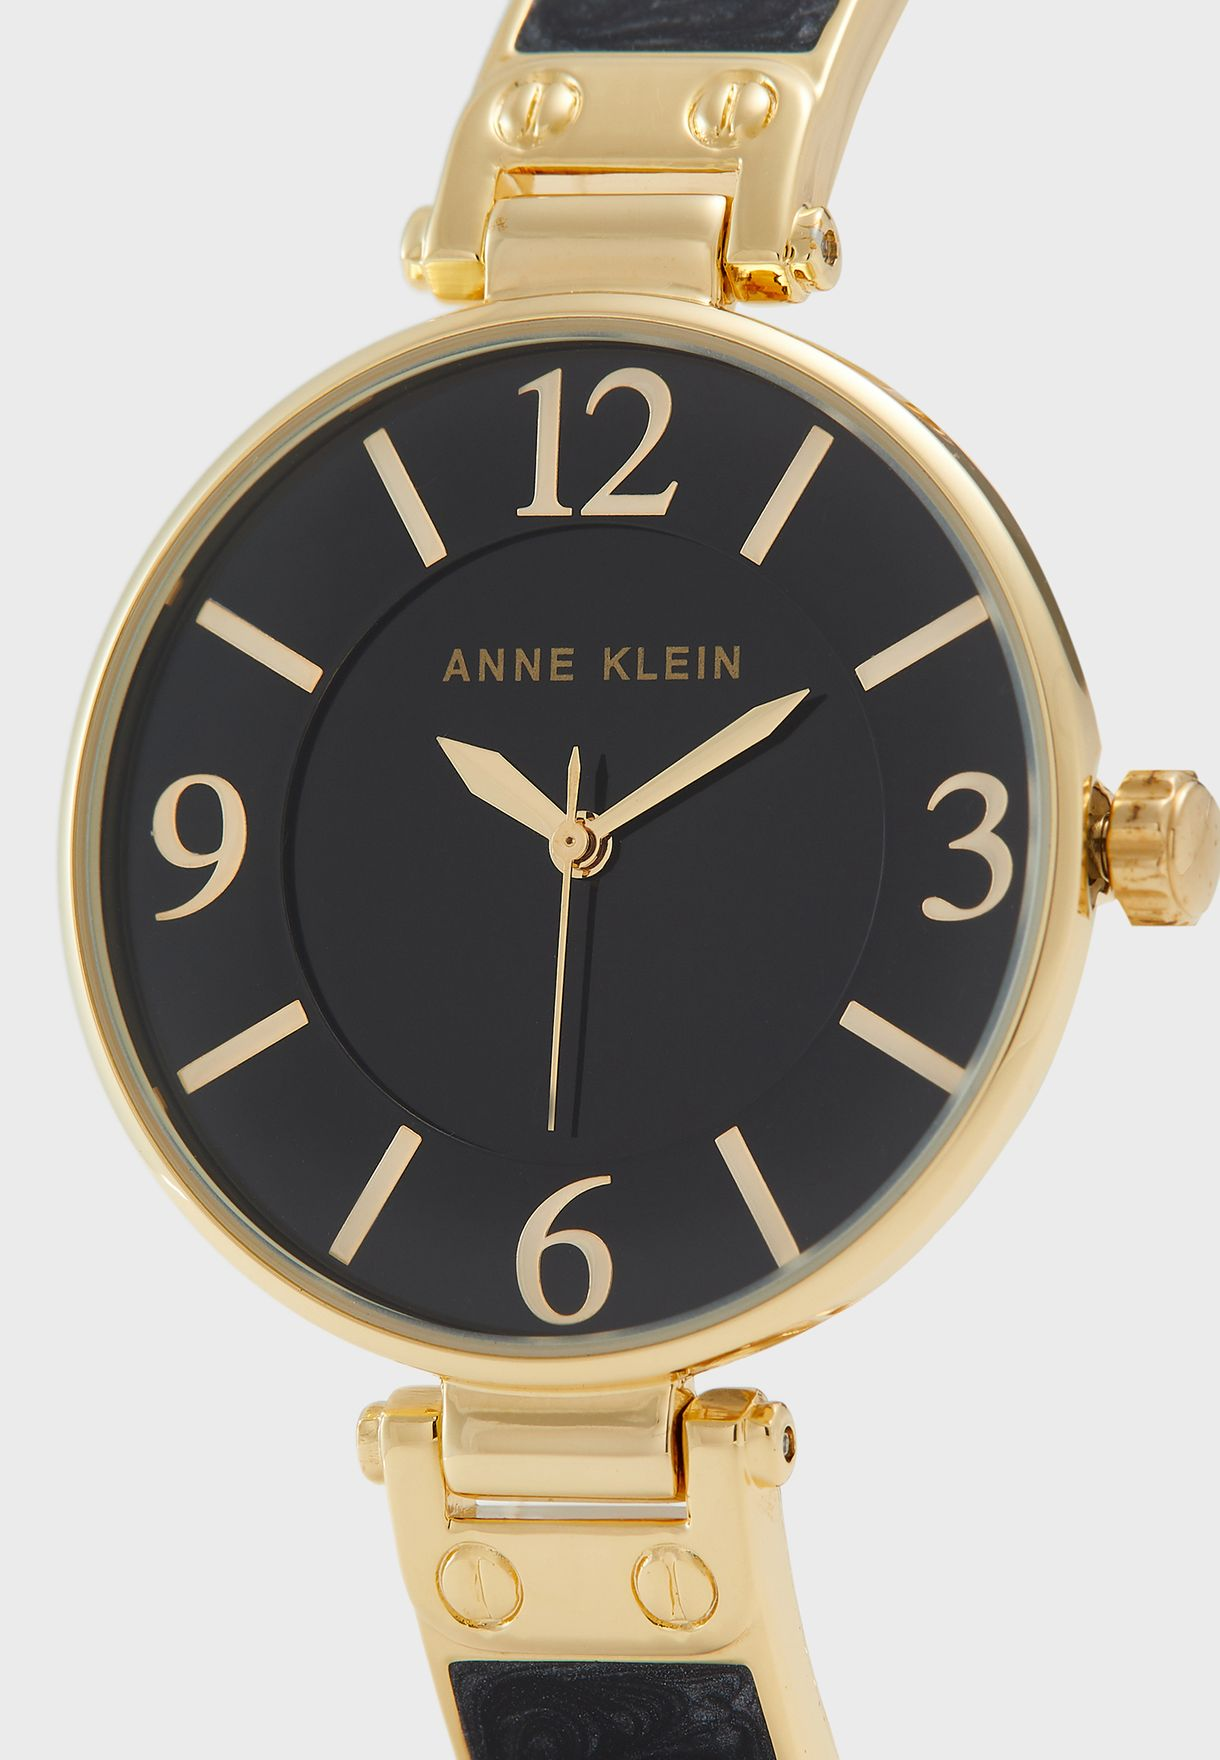 AK2690BKGB Leather Strap Analog Watch